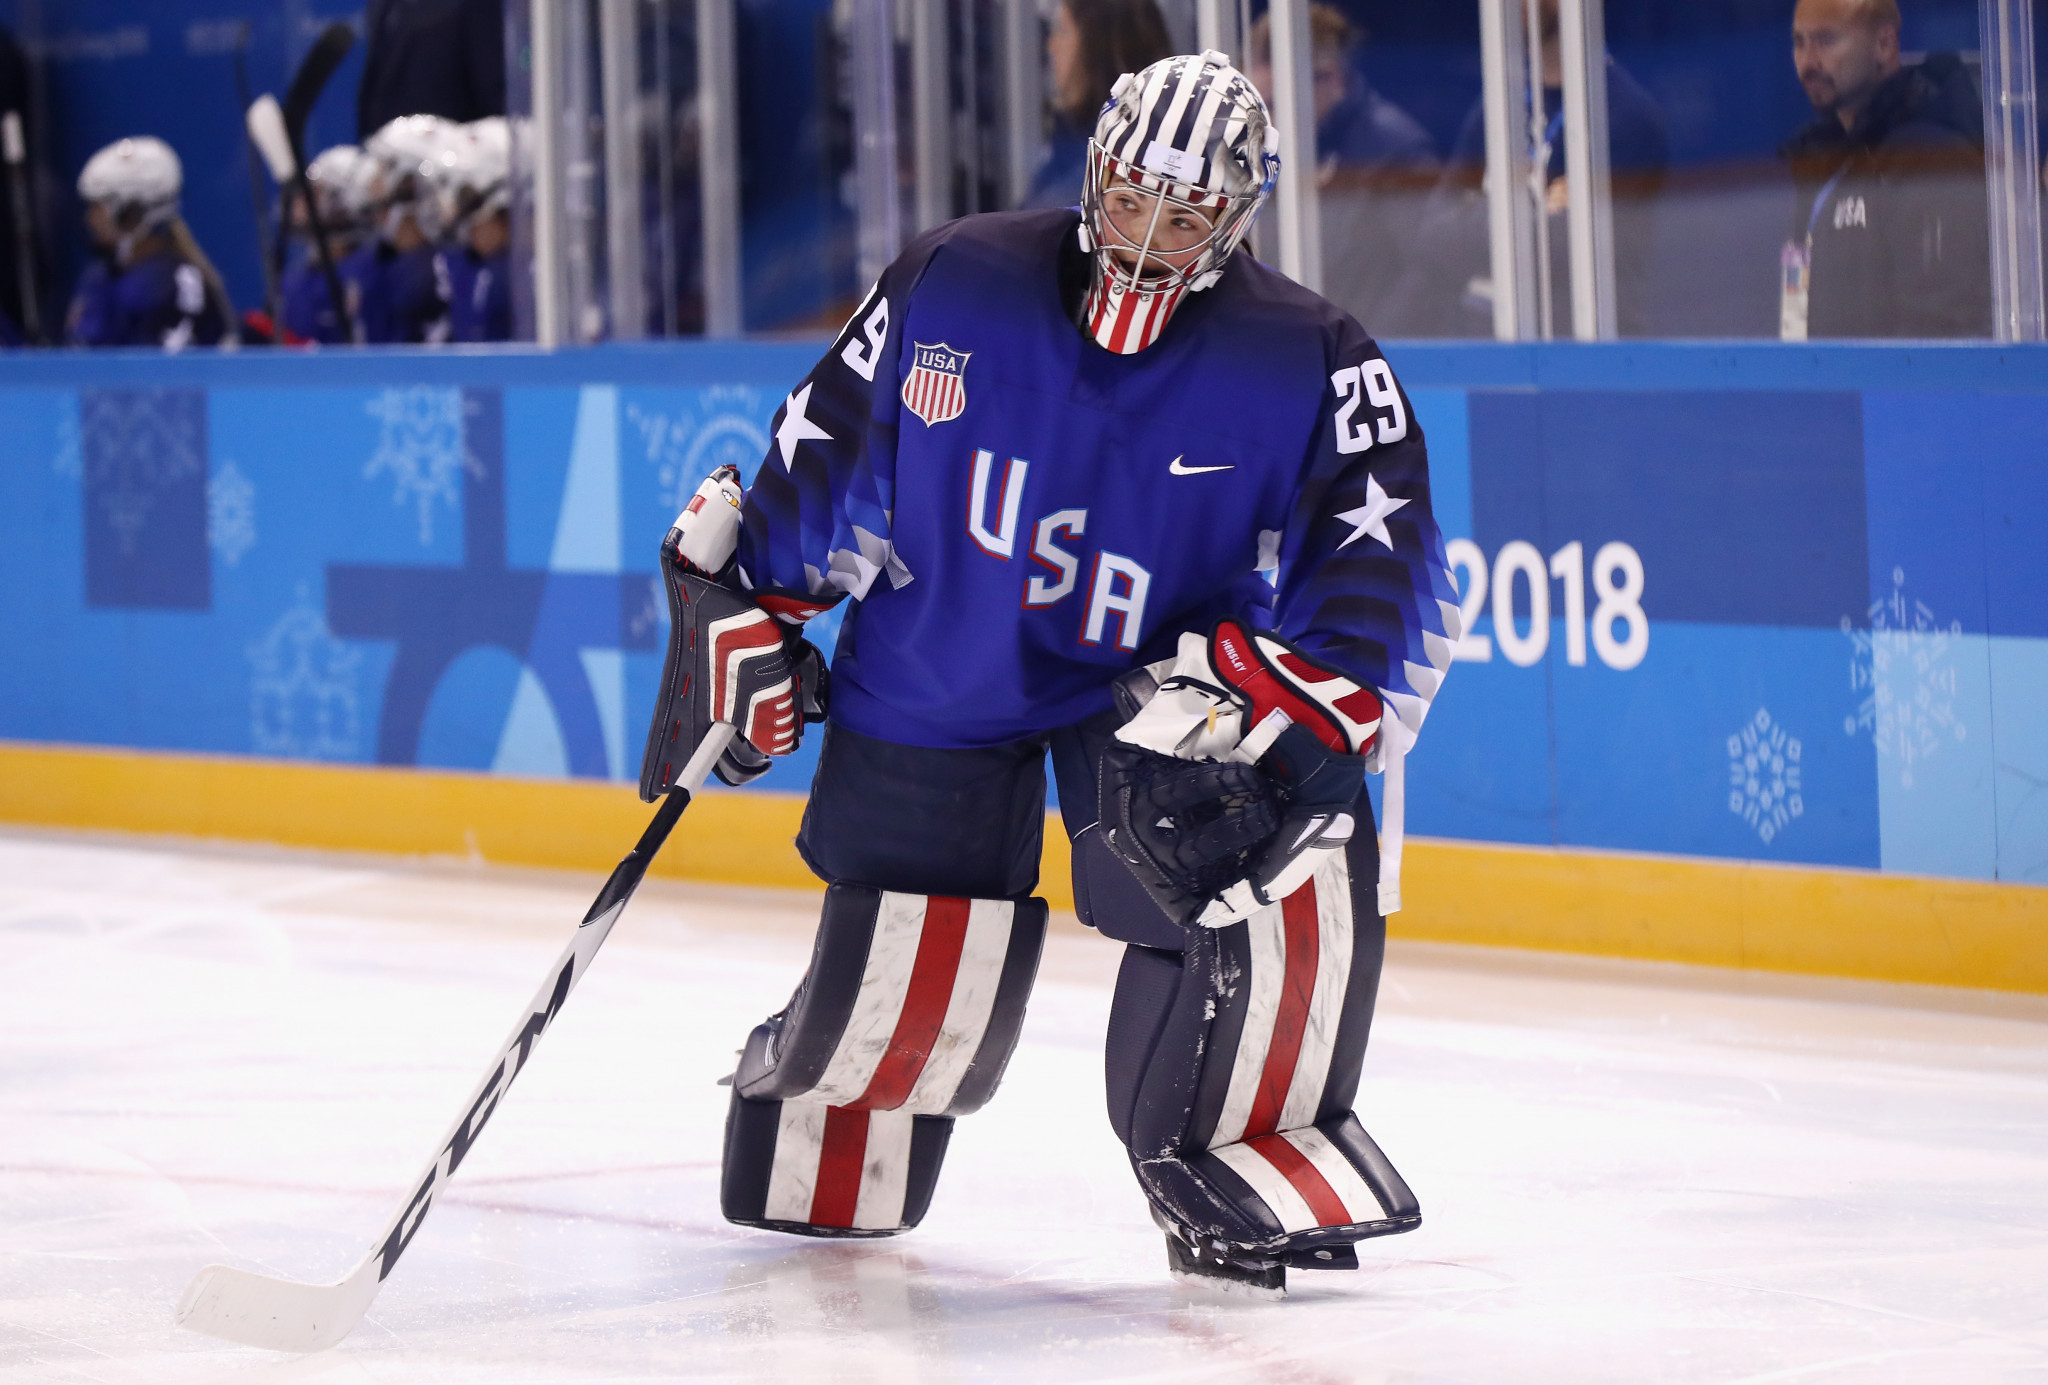 American goaltender Nicole Hensley started the match against the OAR team today at Pyeongchang 2018 and was allowed to wear a helmet with the Statue of Liberty on it ©Getty Images